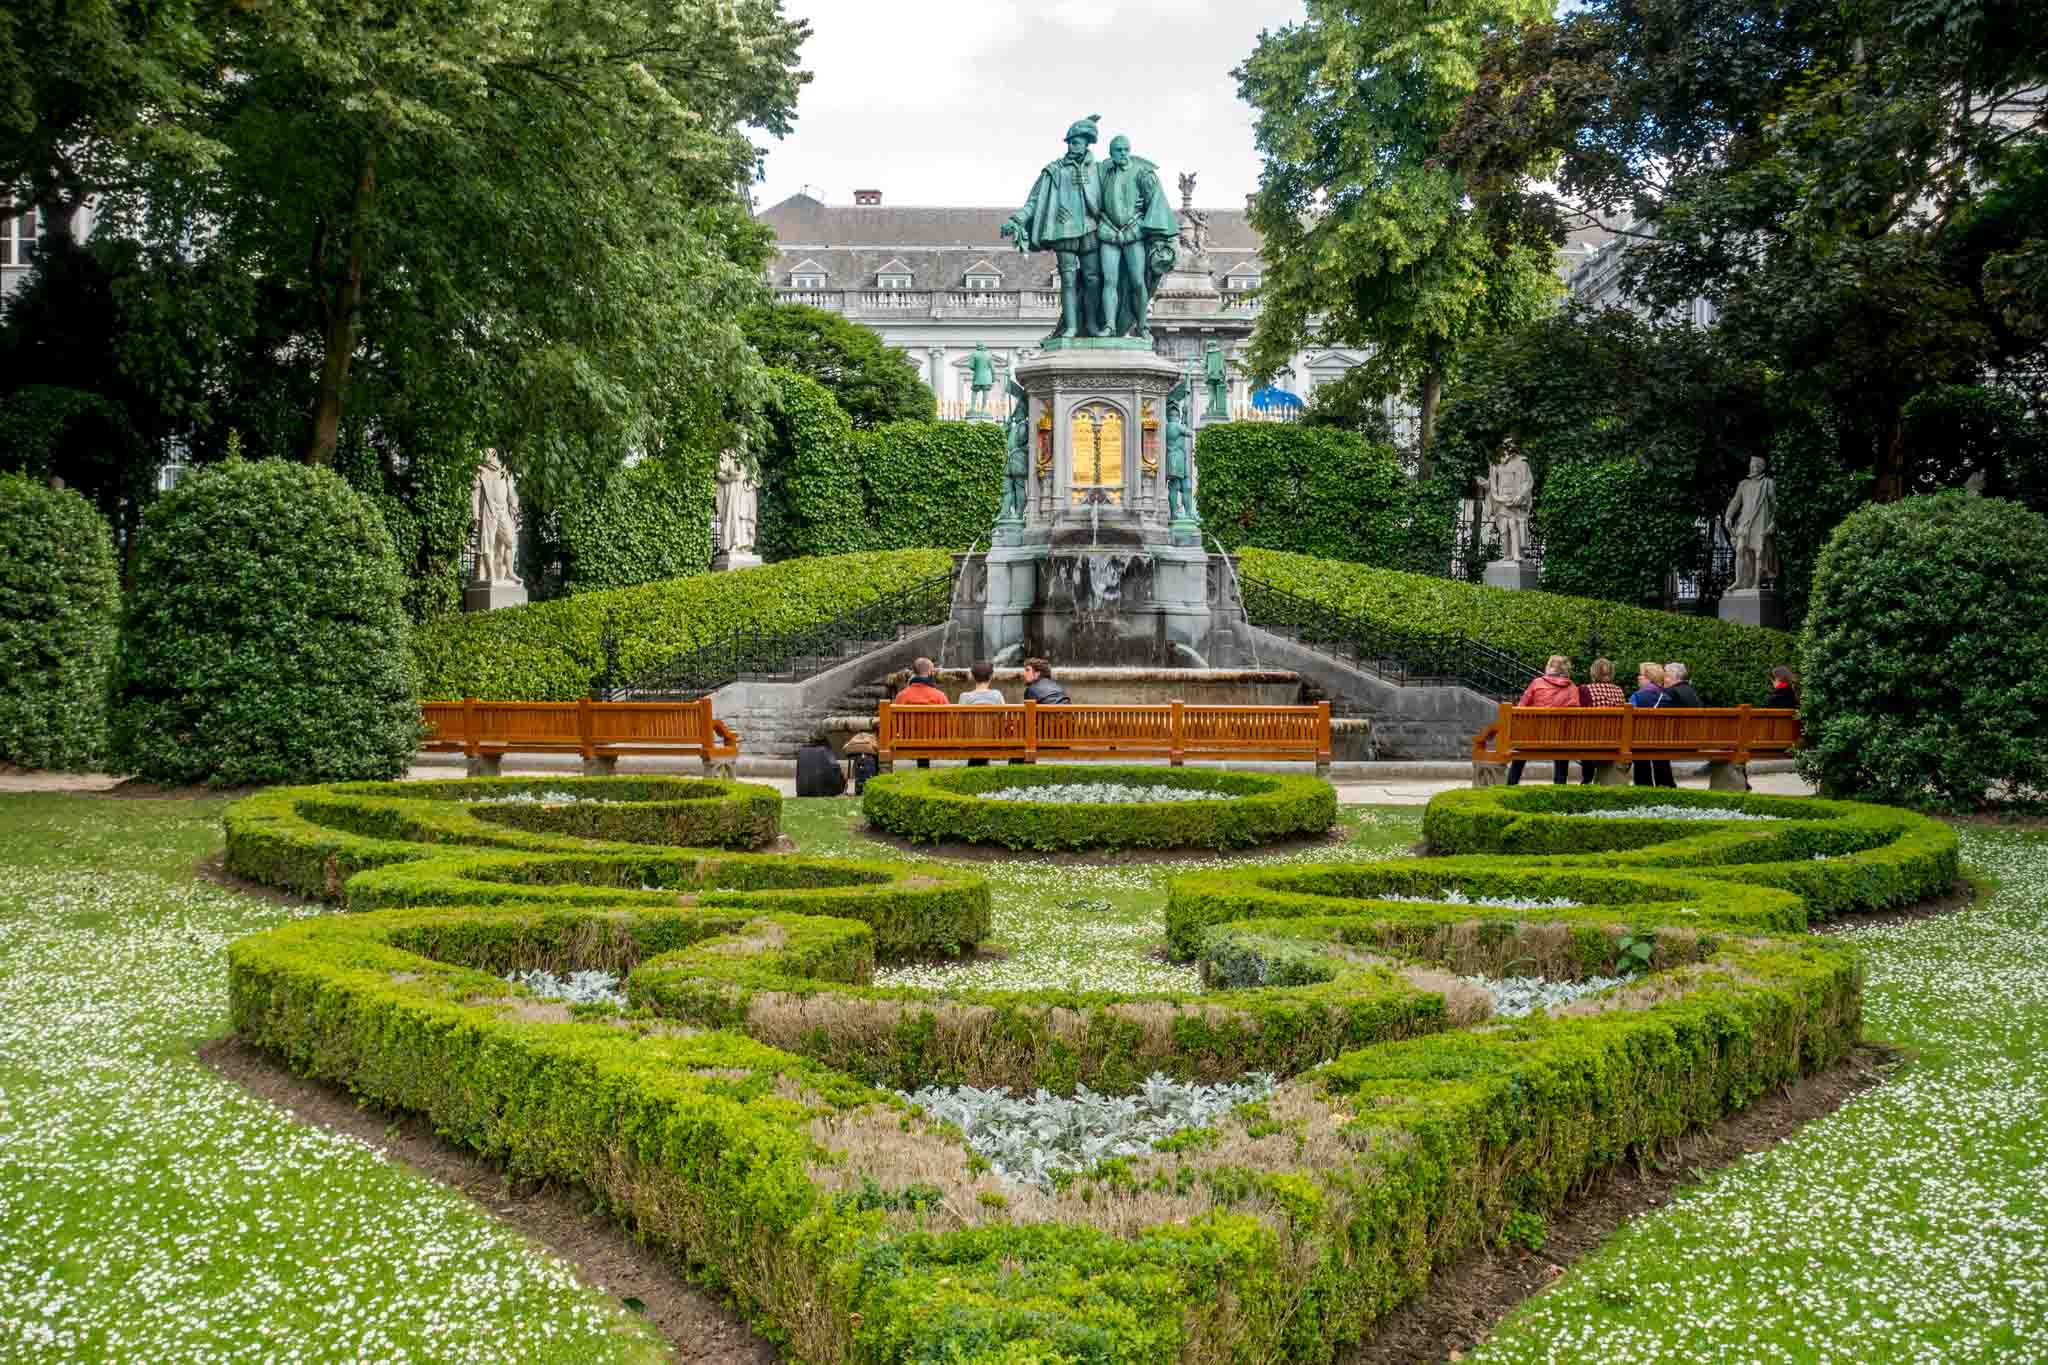 Park with manicured garden, fountain, and visitors on benches